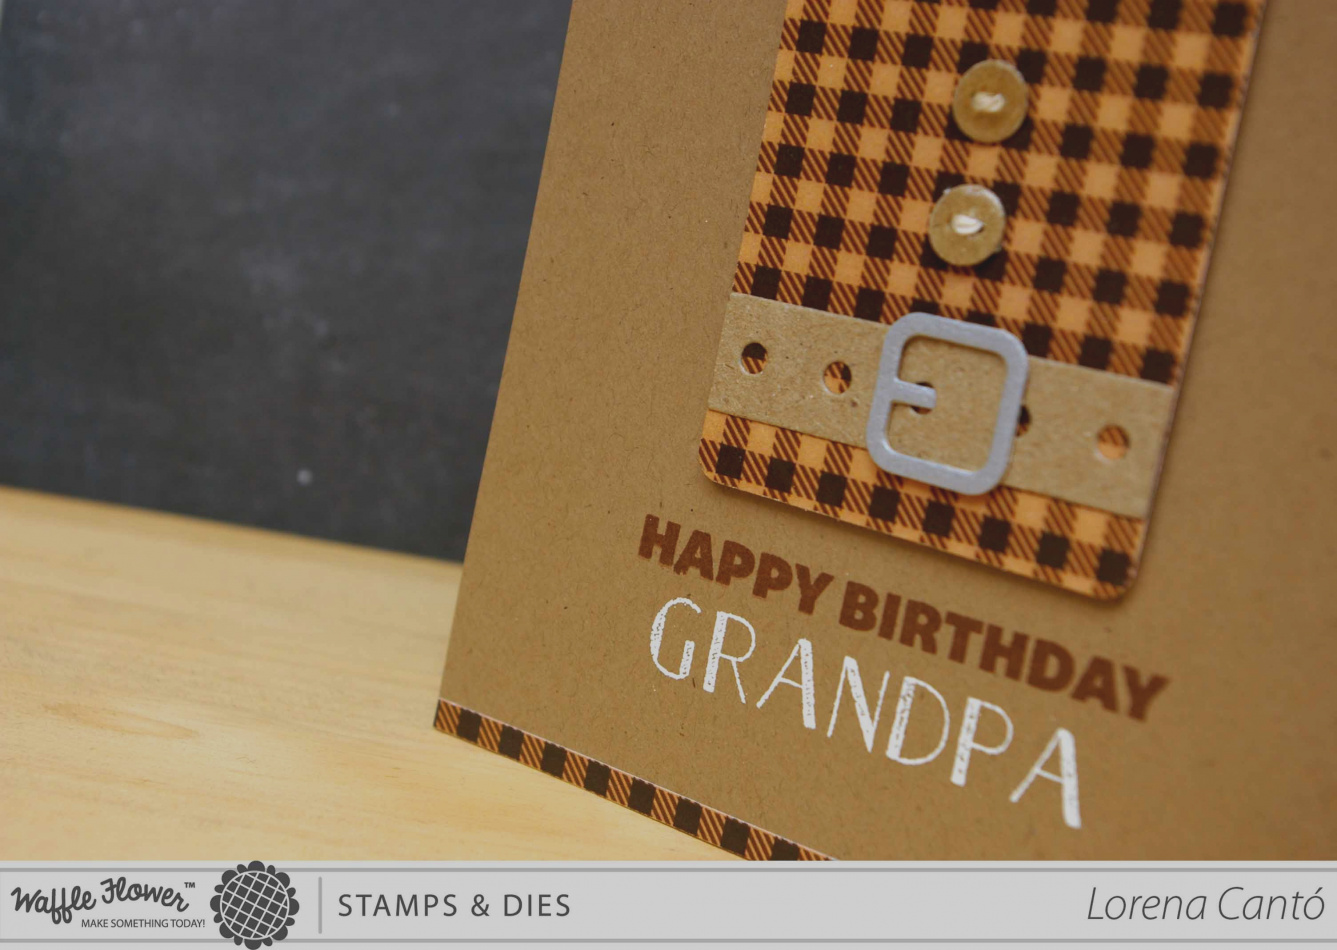 birthday card ideas for grandfather ; pictures-of-birthday-card-ideas-for-grandpa-with-waffle-flower-crafts-and-a-winner